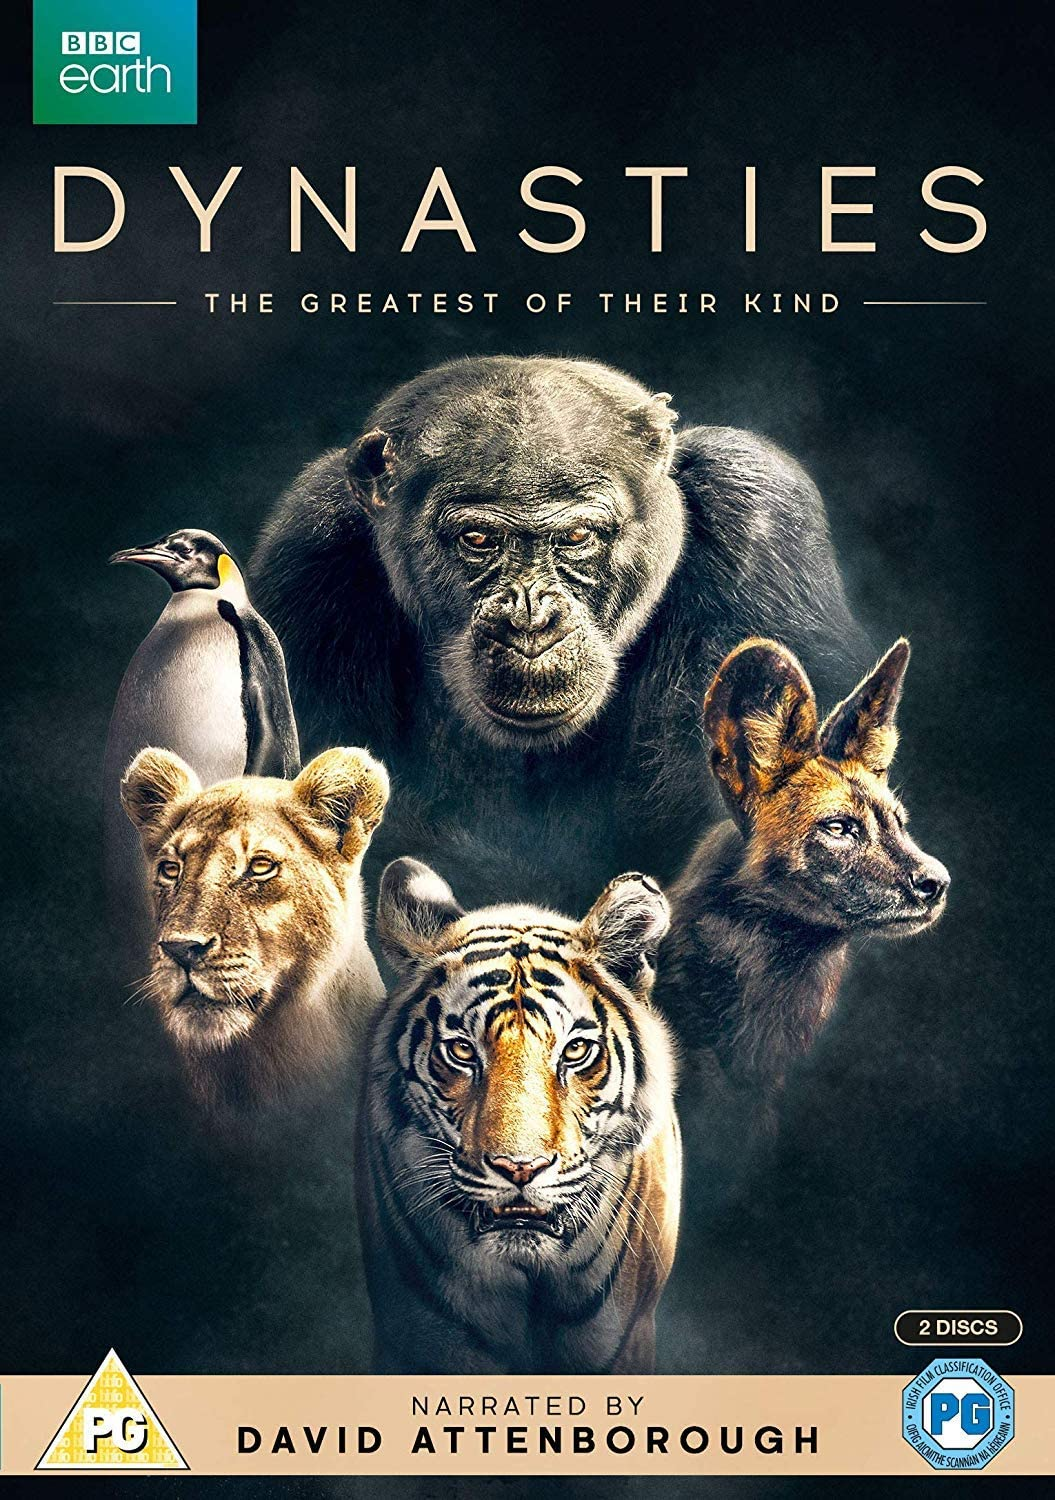 Dynasties [DVD] [2018]: Amazon.co.uk: Sir David Attenborough, Sir David Attenborough: DVD & Blu-ray